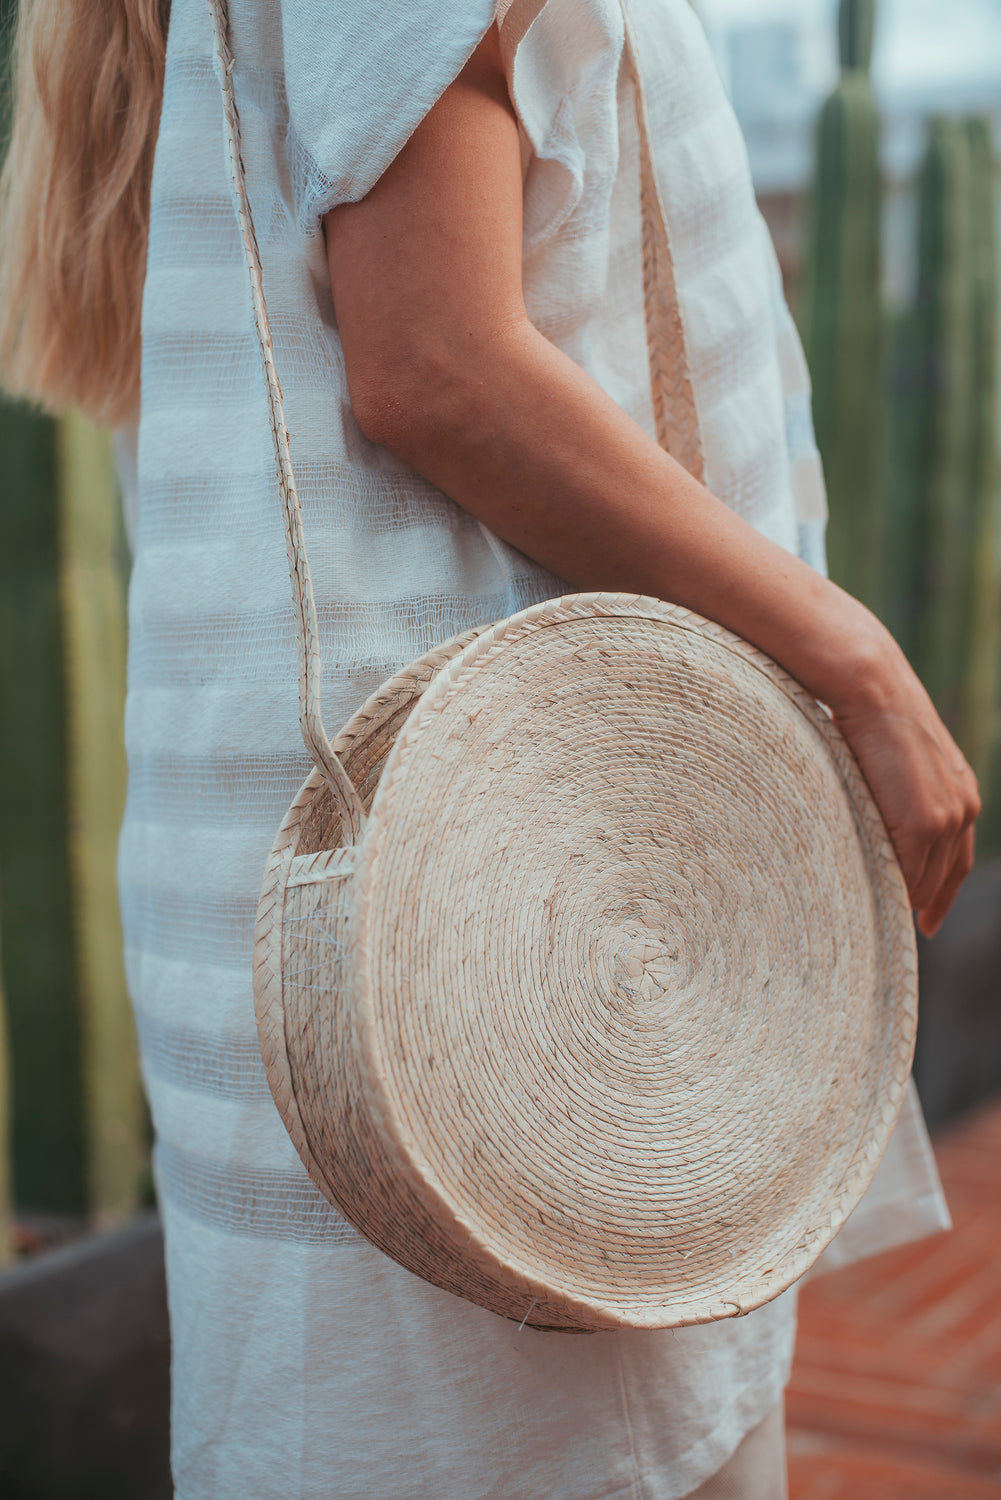 Circular Palm Crossbody Purse with Palm Strap - Large